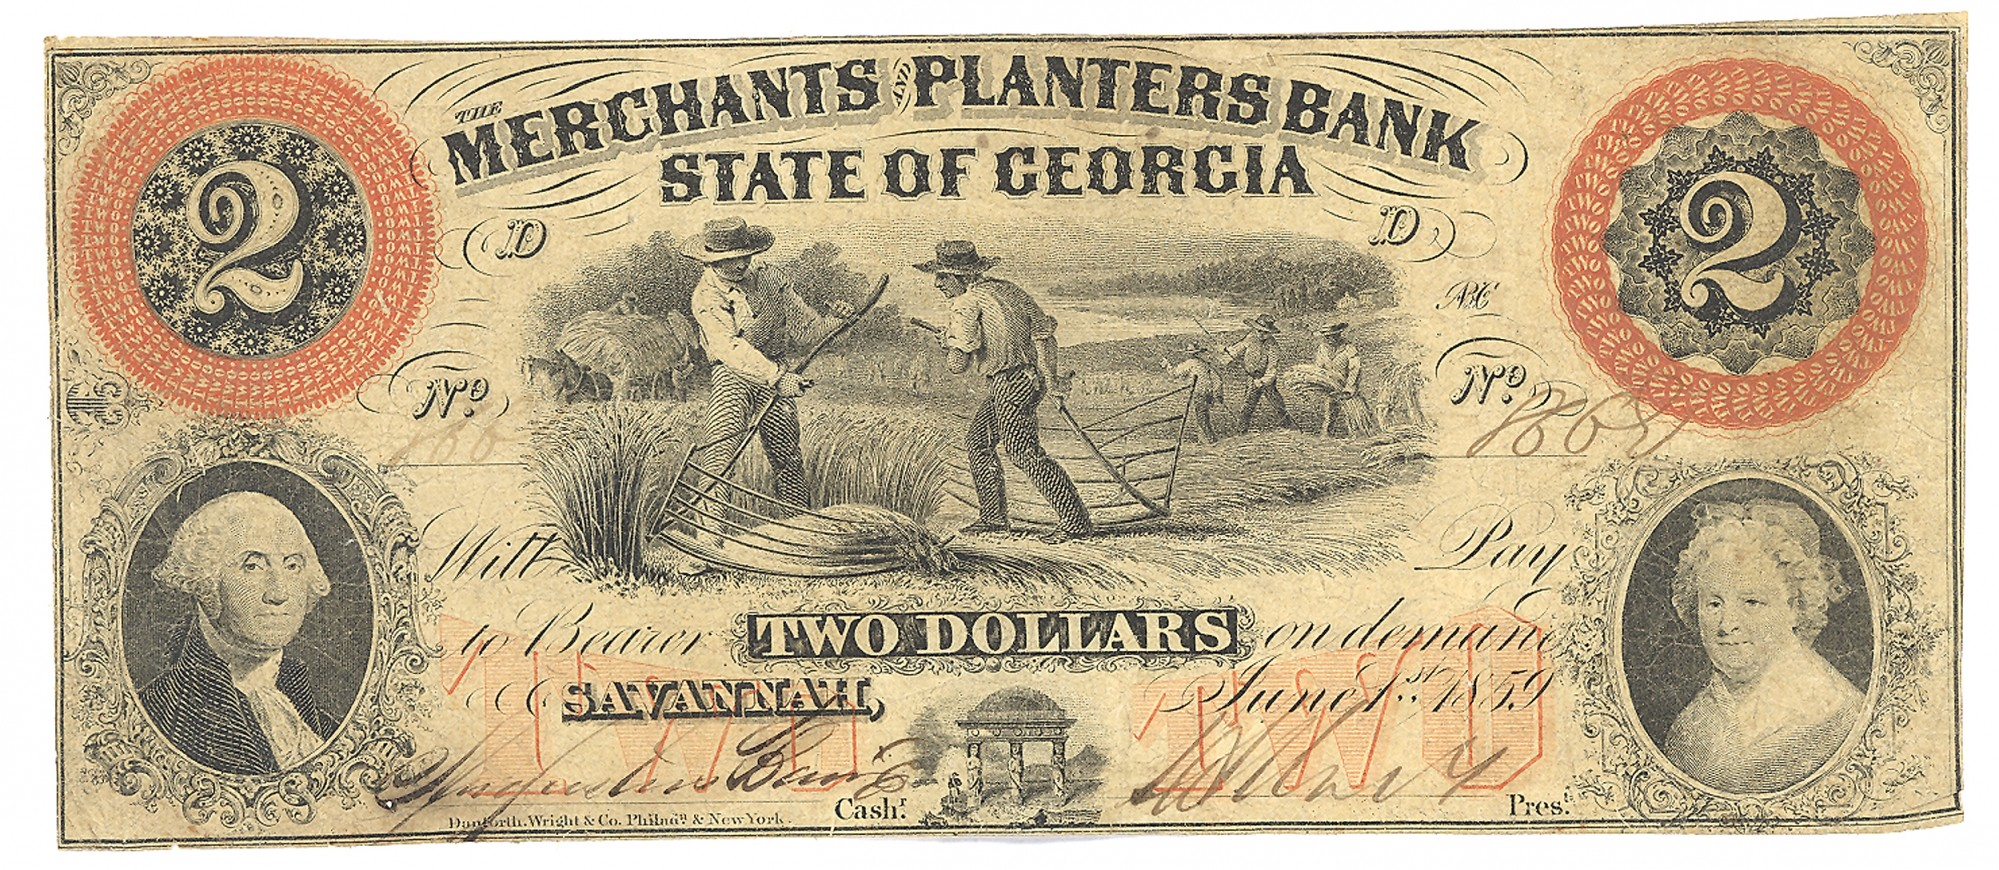 MERCHANTS AND PLANTERS BANK, SAVANNAH, GEORGIA, $2 NOTE